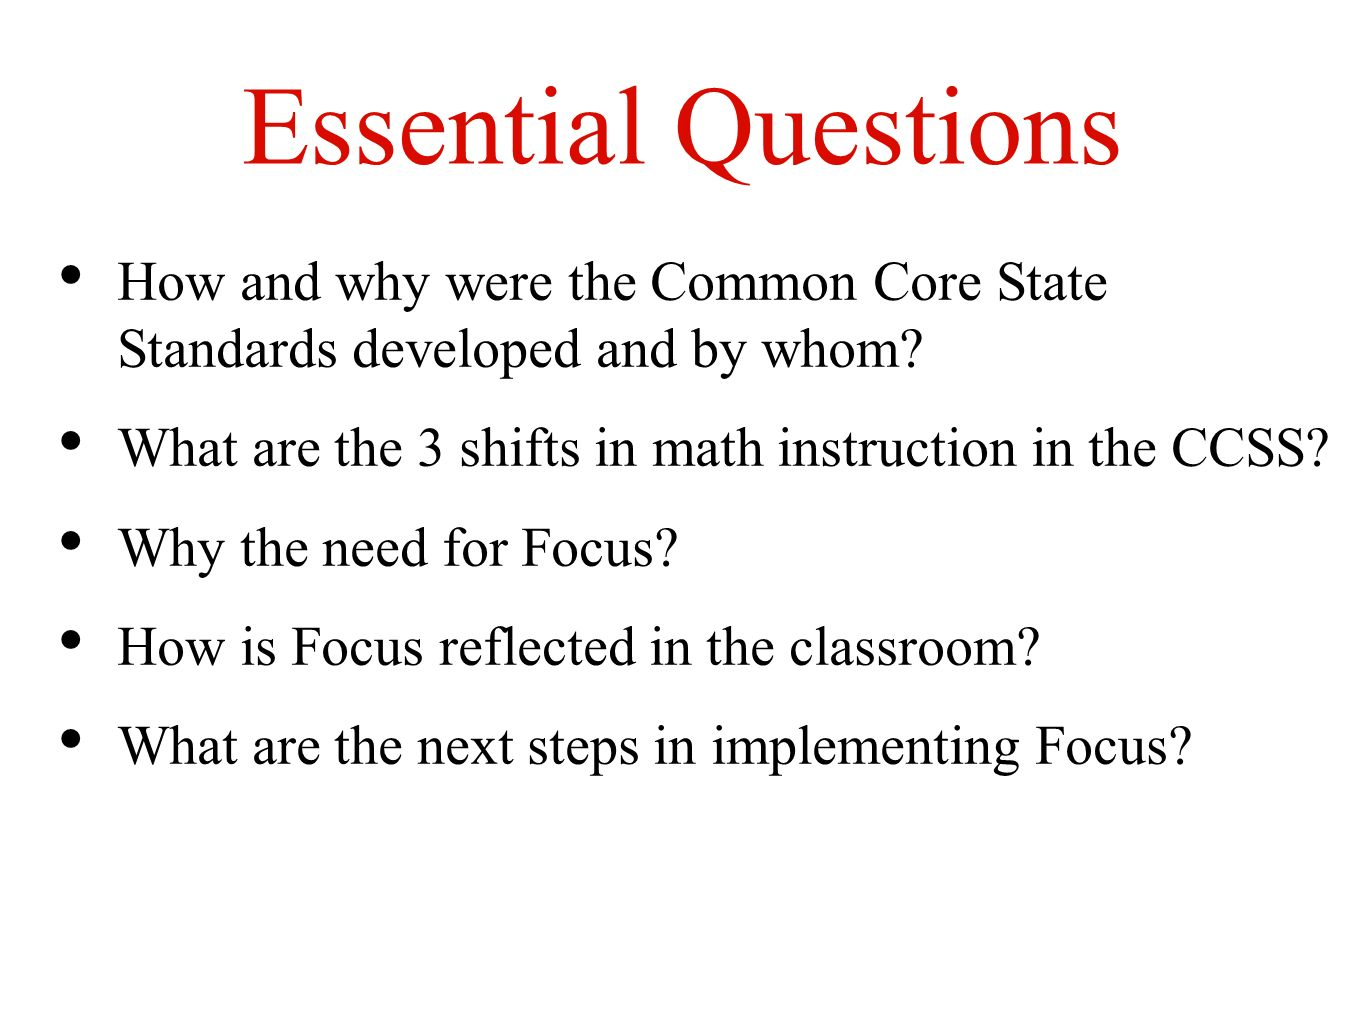 Essential Questions How and why were the Common Core State Standards developed and by whom What are the 3 shifts in math instruction in the CCSS